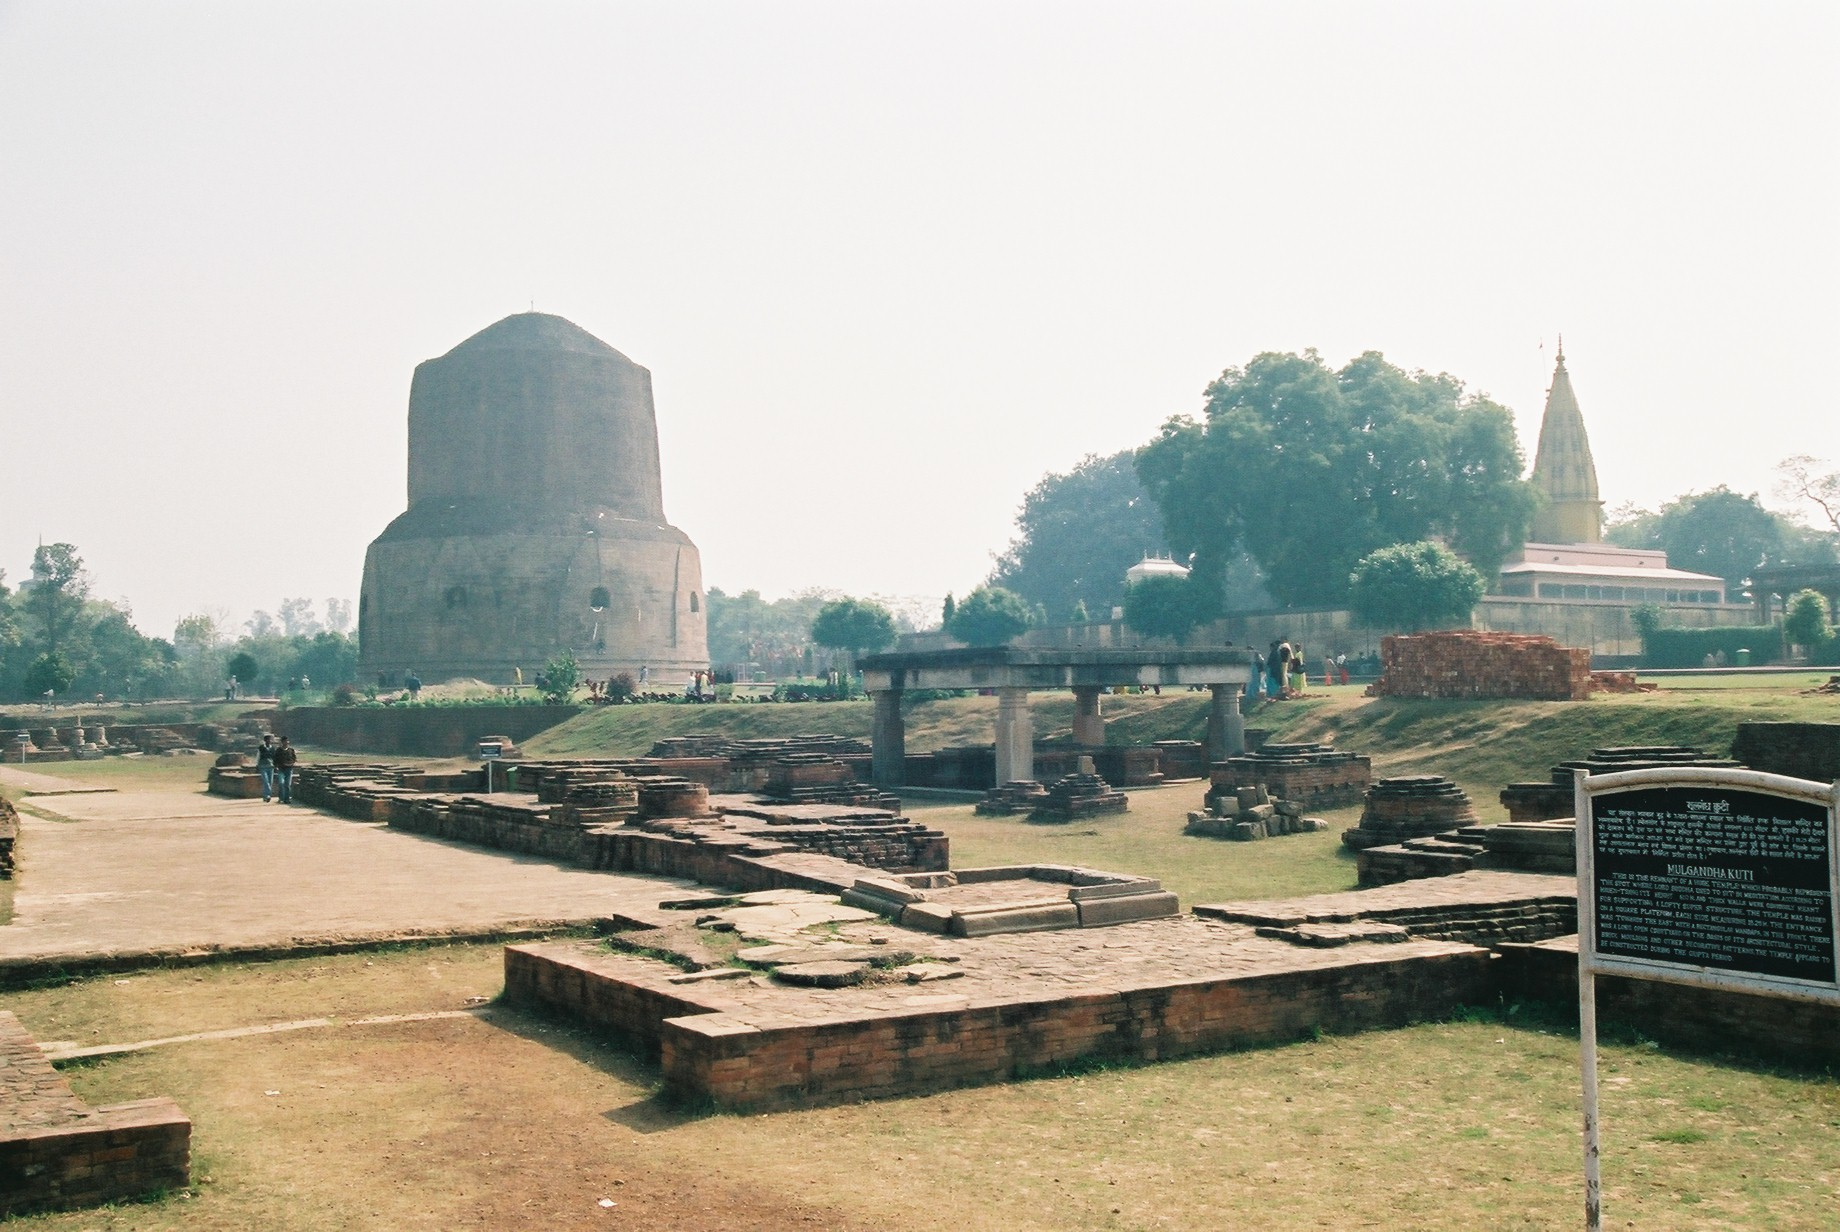 Archeological site at Sarnath (Dhamek stupa is visible in background)